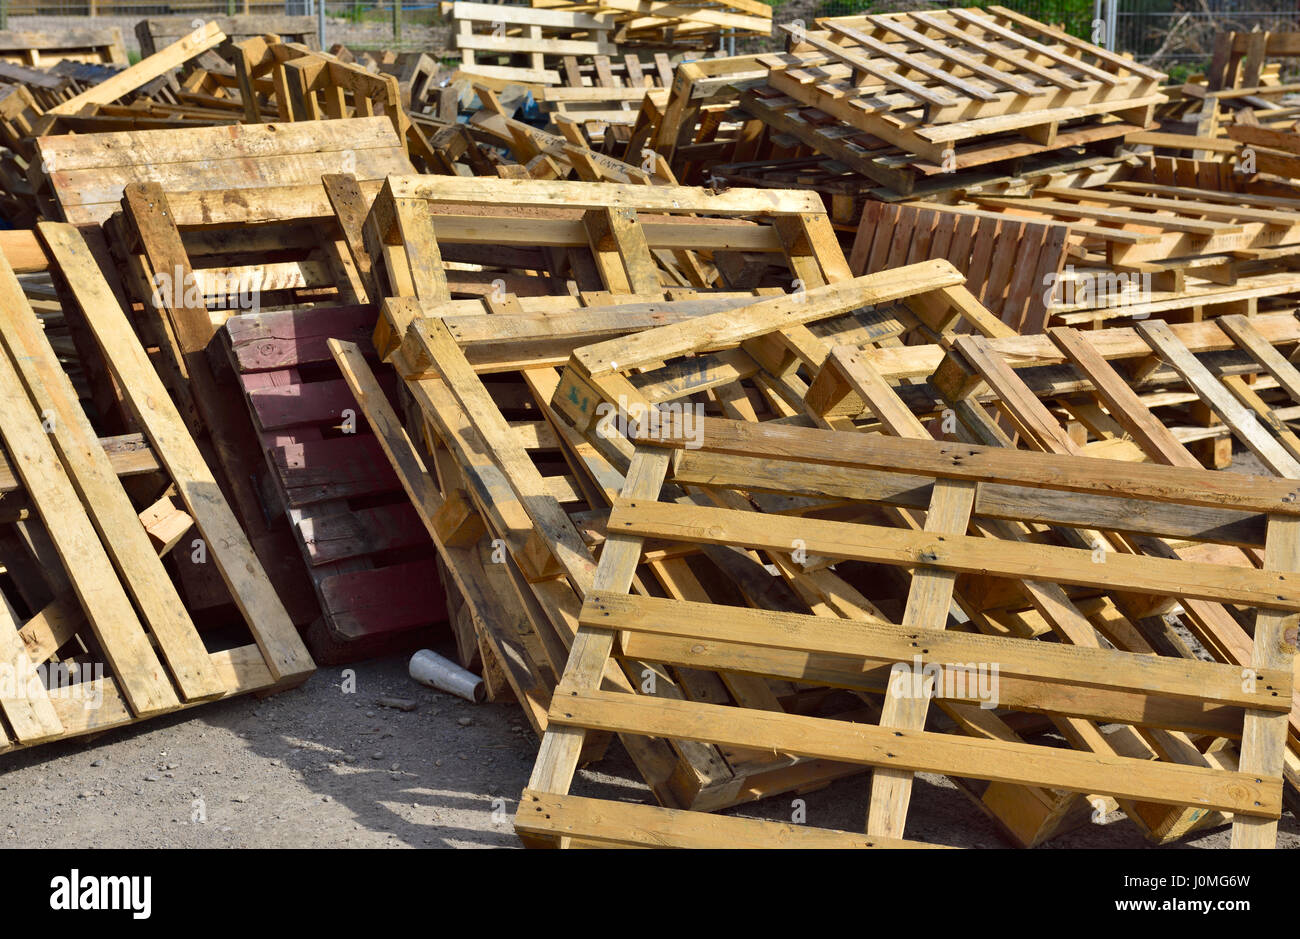 wooden pallets and scrap wood for recycling stock photo 138134721